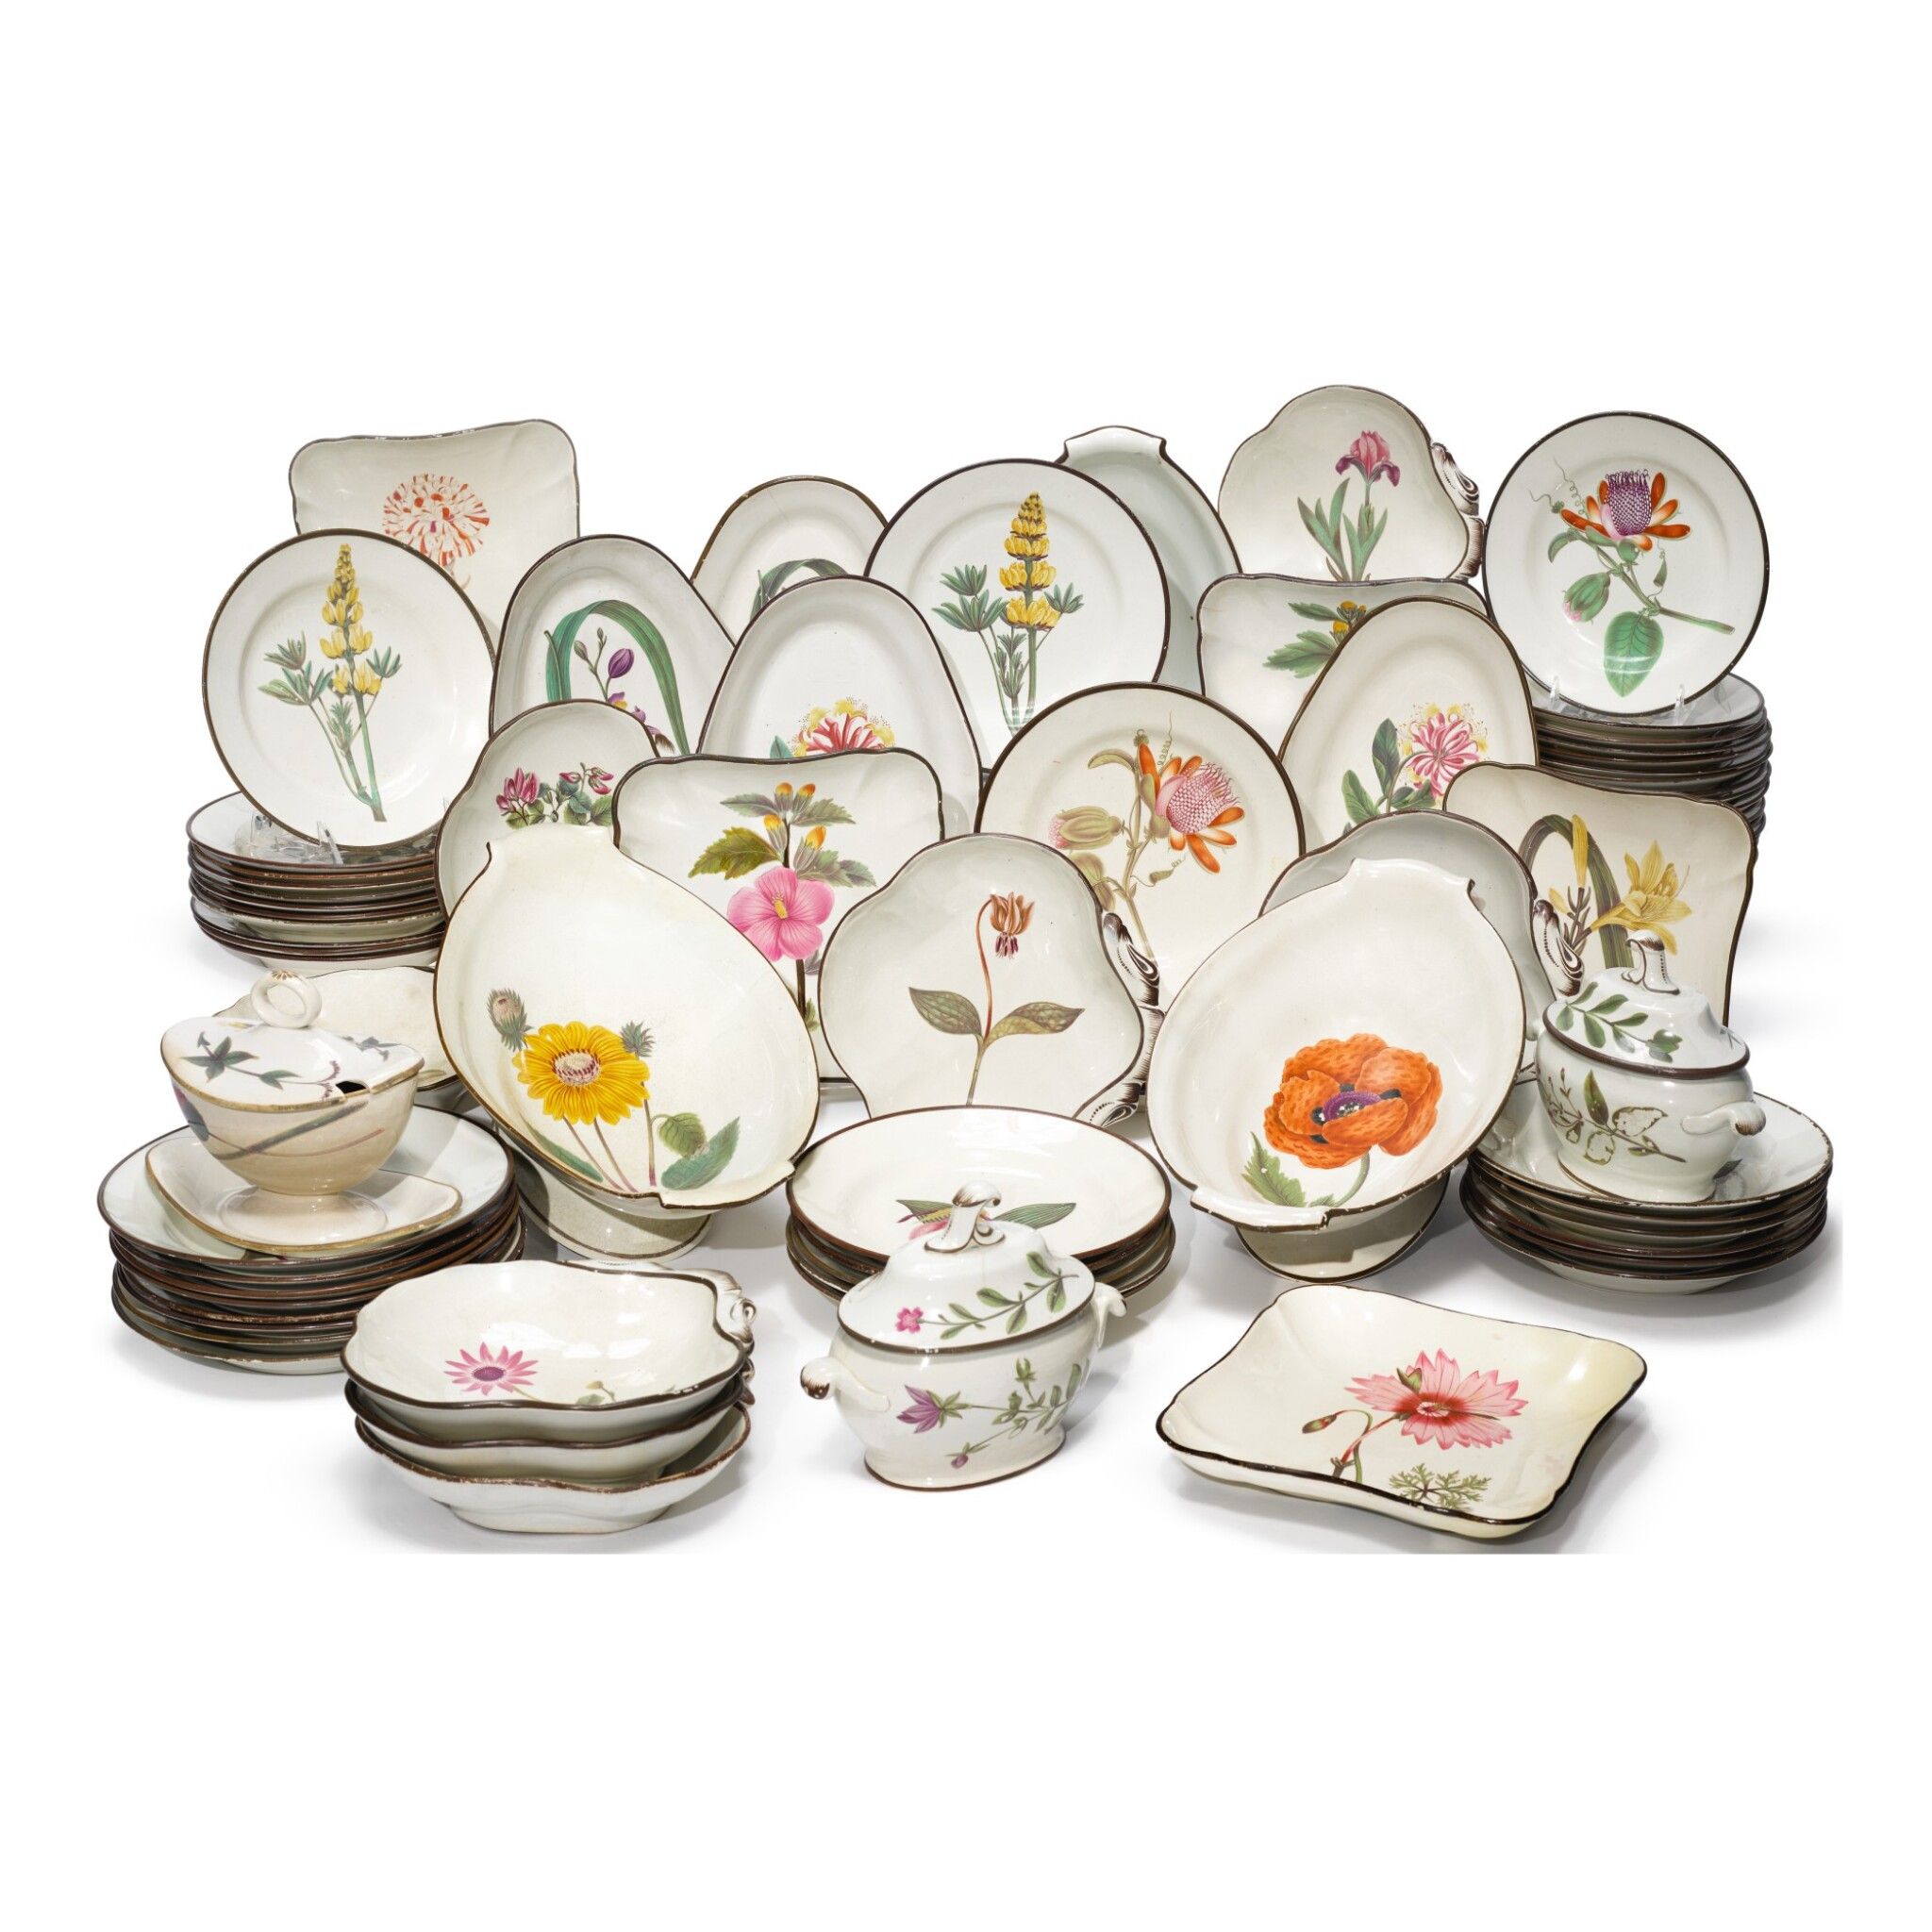 View full screen - View 1 of Lot 735. AN EXTENSIVE ASSEMBLED ENGLISH PEARLWARE BOTANICAL DESSERT SERVICE, EARLY 19TH CENTURY.